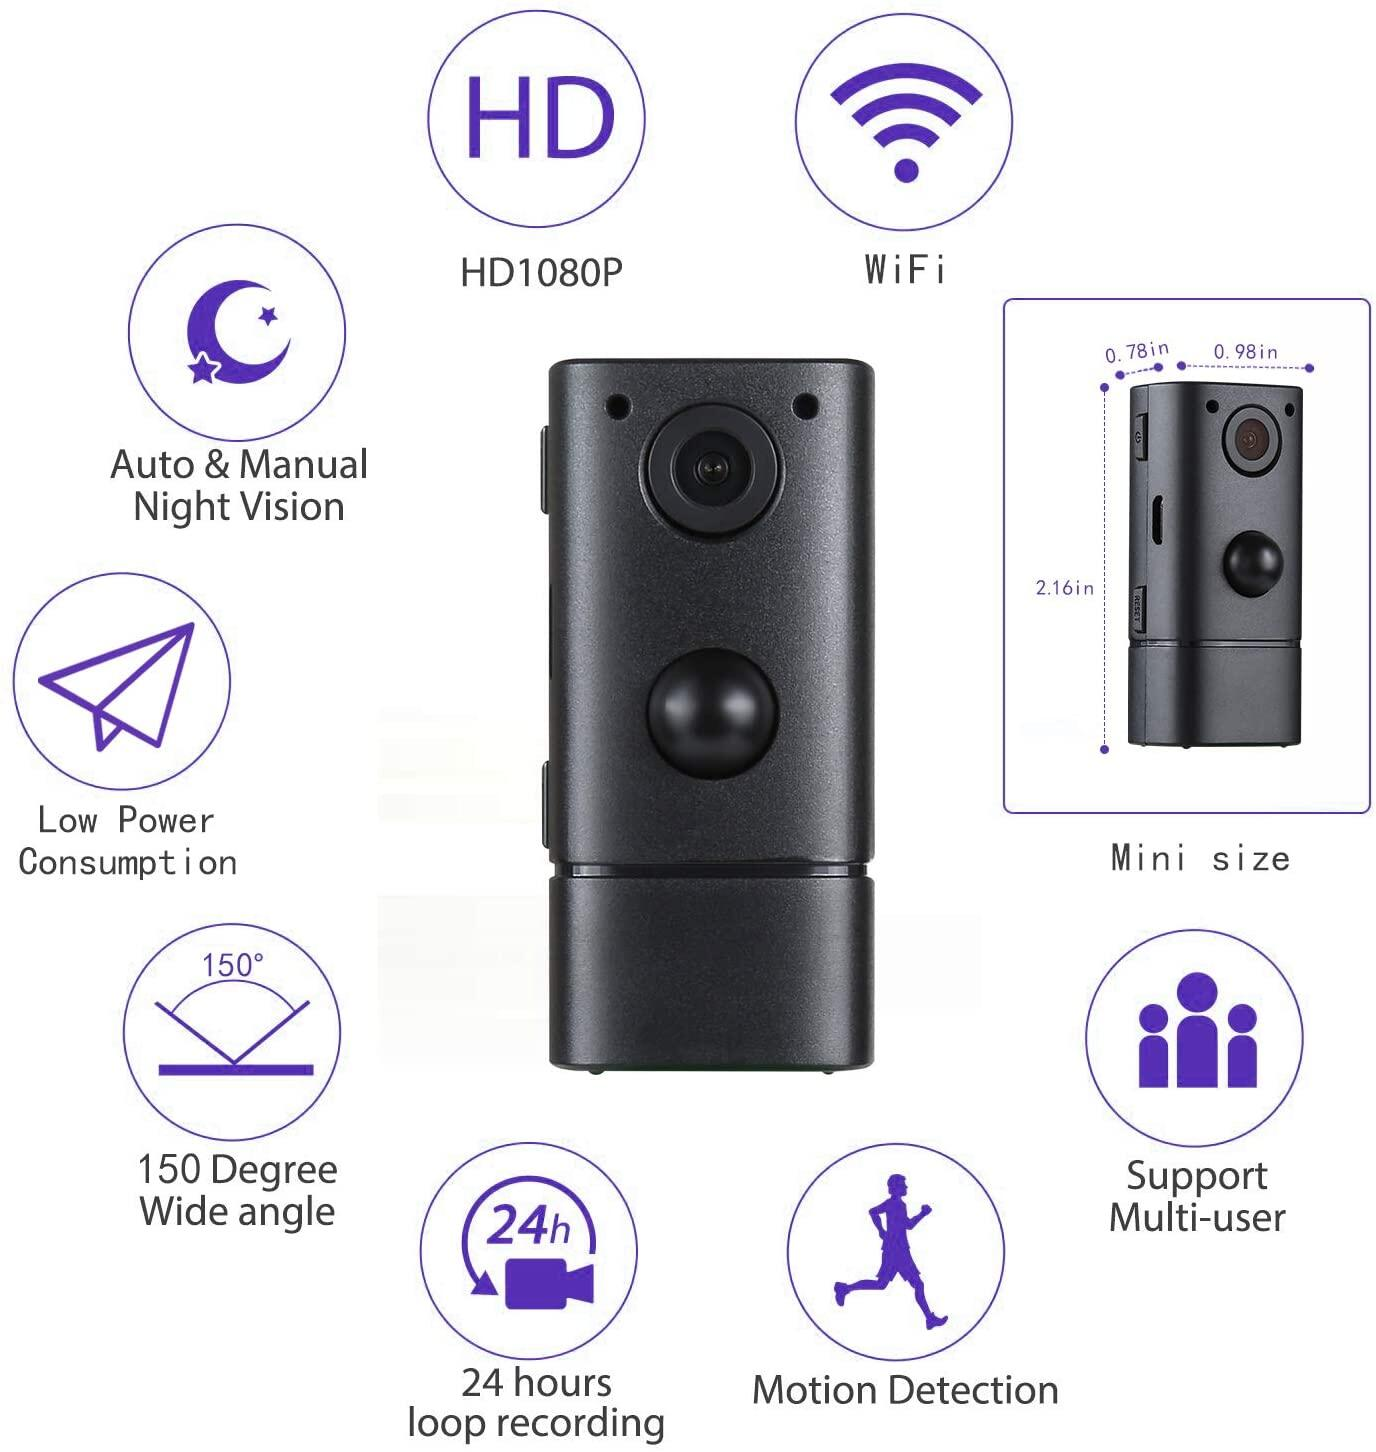 Jdm Mini Spy Camera Wifi Wireless Hidden Security Camera Hd 1080p Small Secret Nanny Cameras Perfect 150 Angle Tiny Spy Cam For Home Upgraded Night Vision And Motion Detection Guaranteed Remote